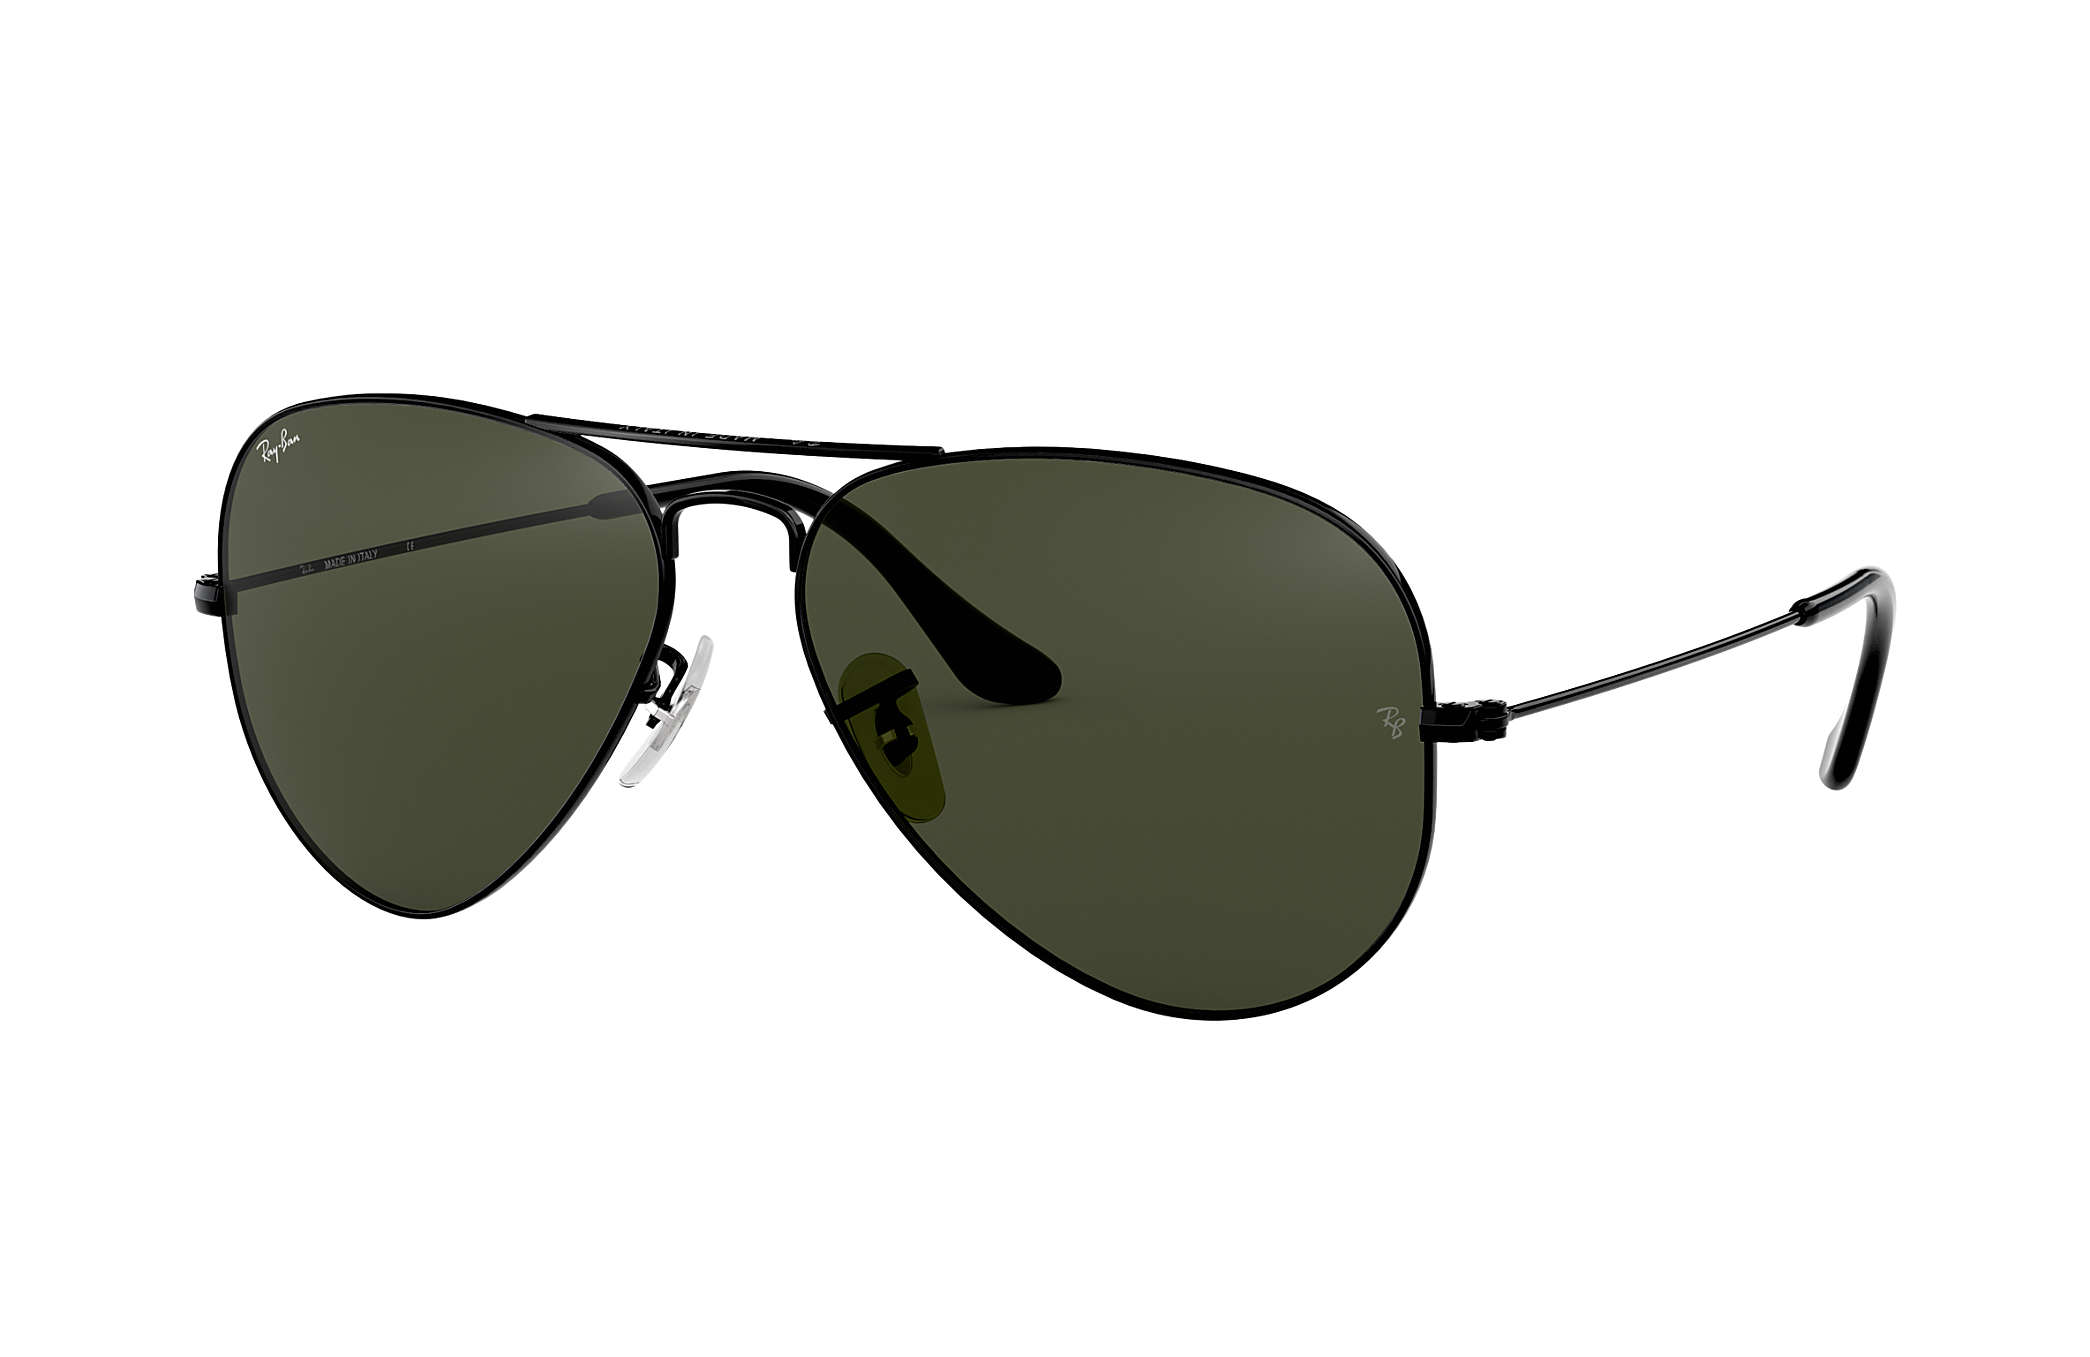 Ray-Ban Aviator Classic RB3025 Negro - Metal - Lentes Verde ...